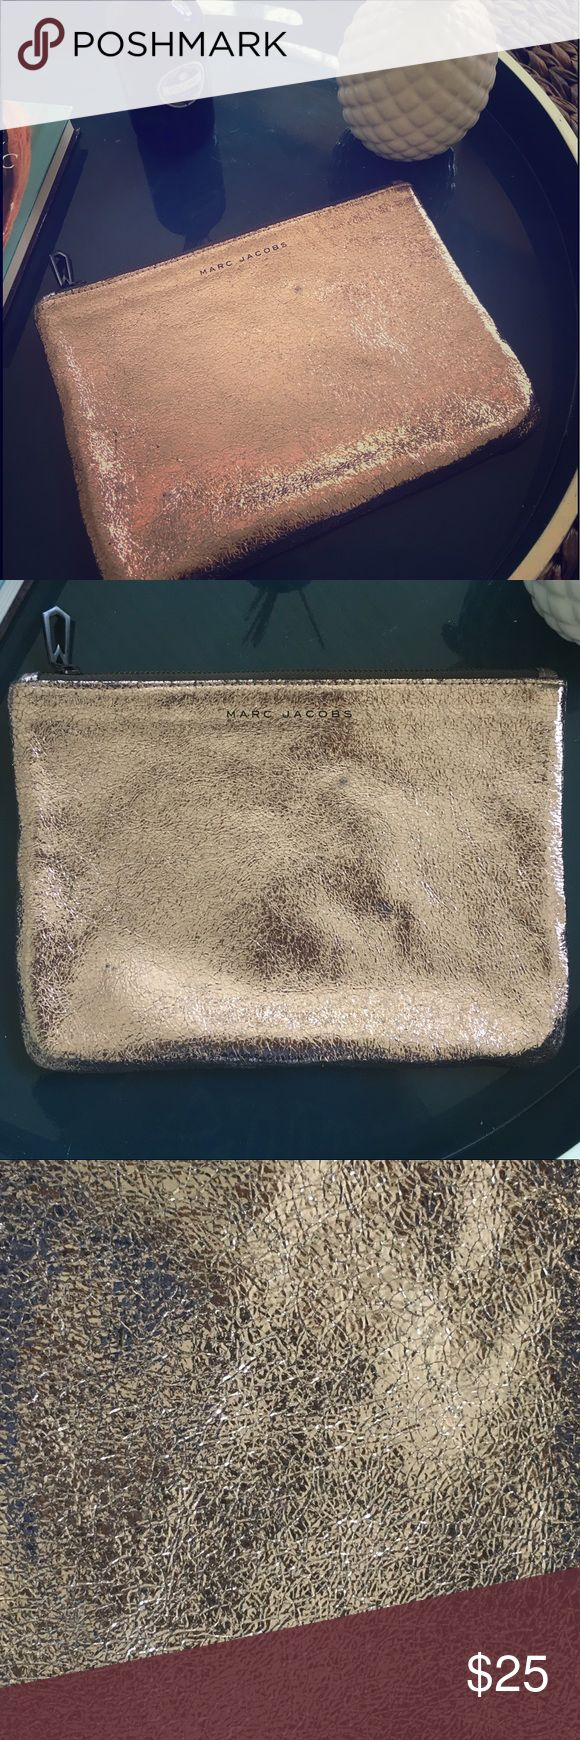 Adorable Marc Jacobs Gold Clutch Bag This adorable Marc Jacobs clutch bag is great for a night out or can do double duty as a makeup bag! It is in good used condition, showing only slight signs of wear in the fabric. A beautiful bag for a great price. Marc Jacobs Bags Clutches & Wristlets